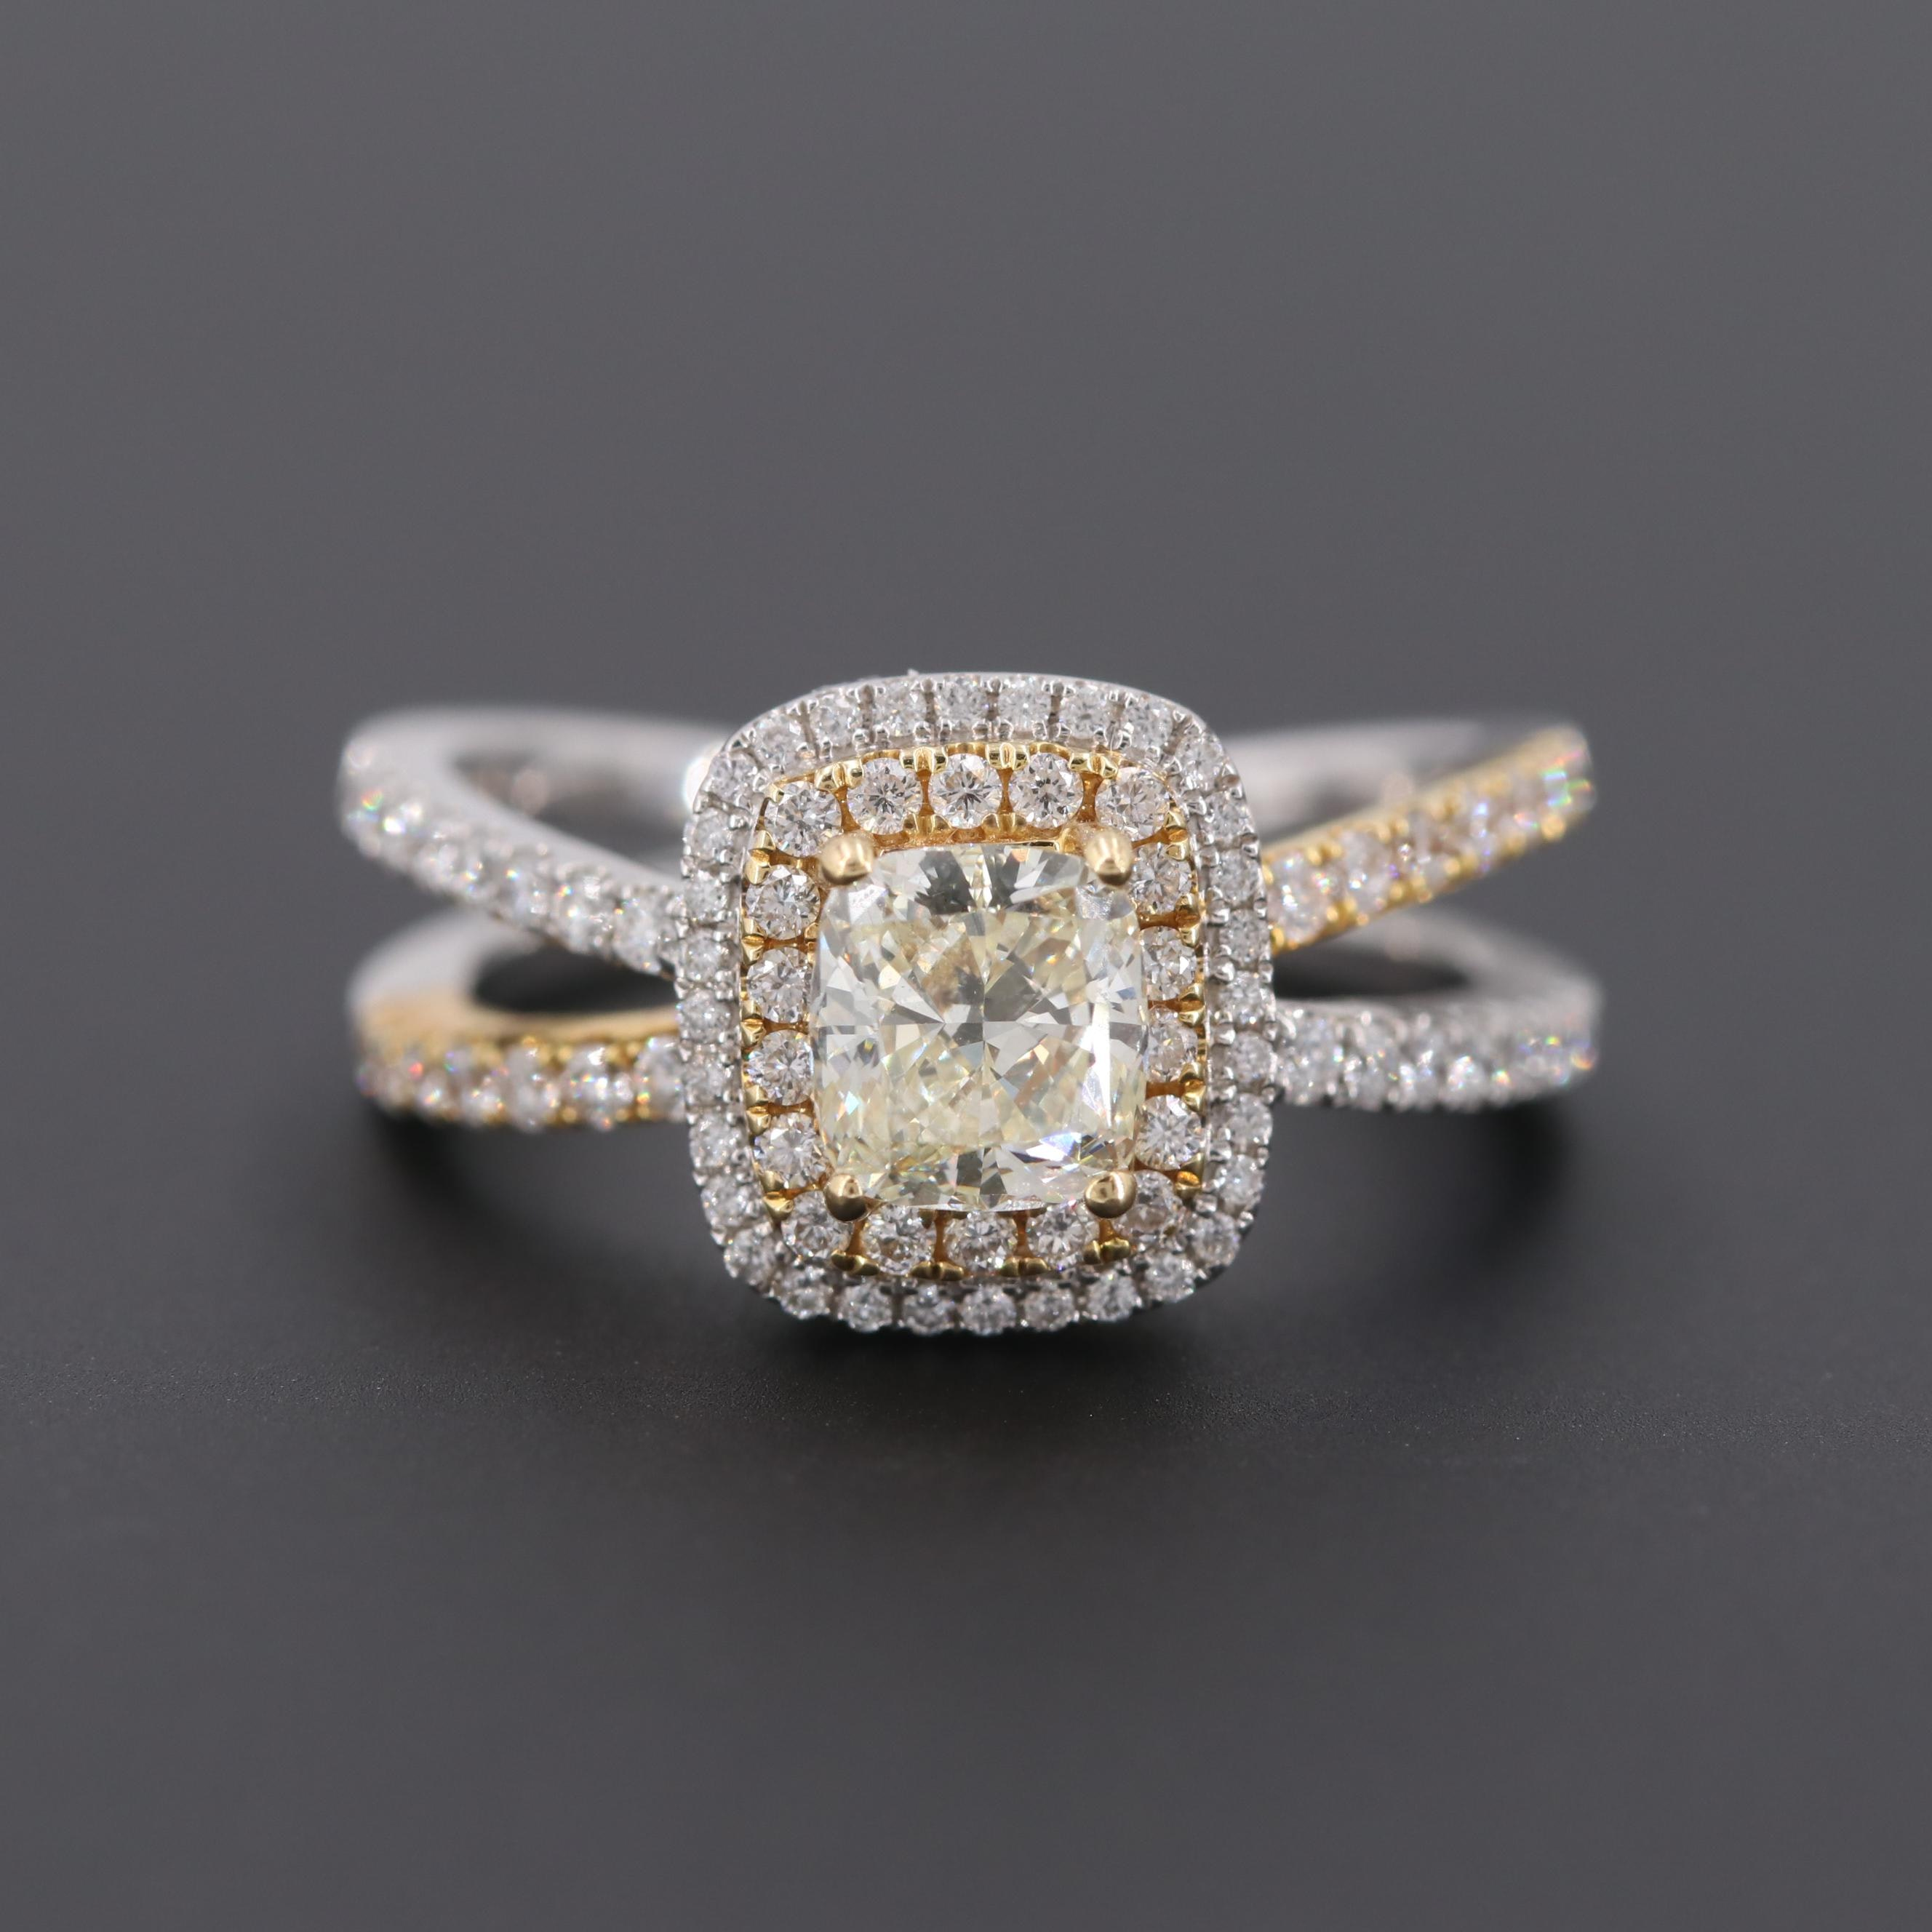 14K White Gold 1.71 CTW  Diamond Ring with 18K Yellow Gold Accents